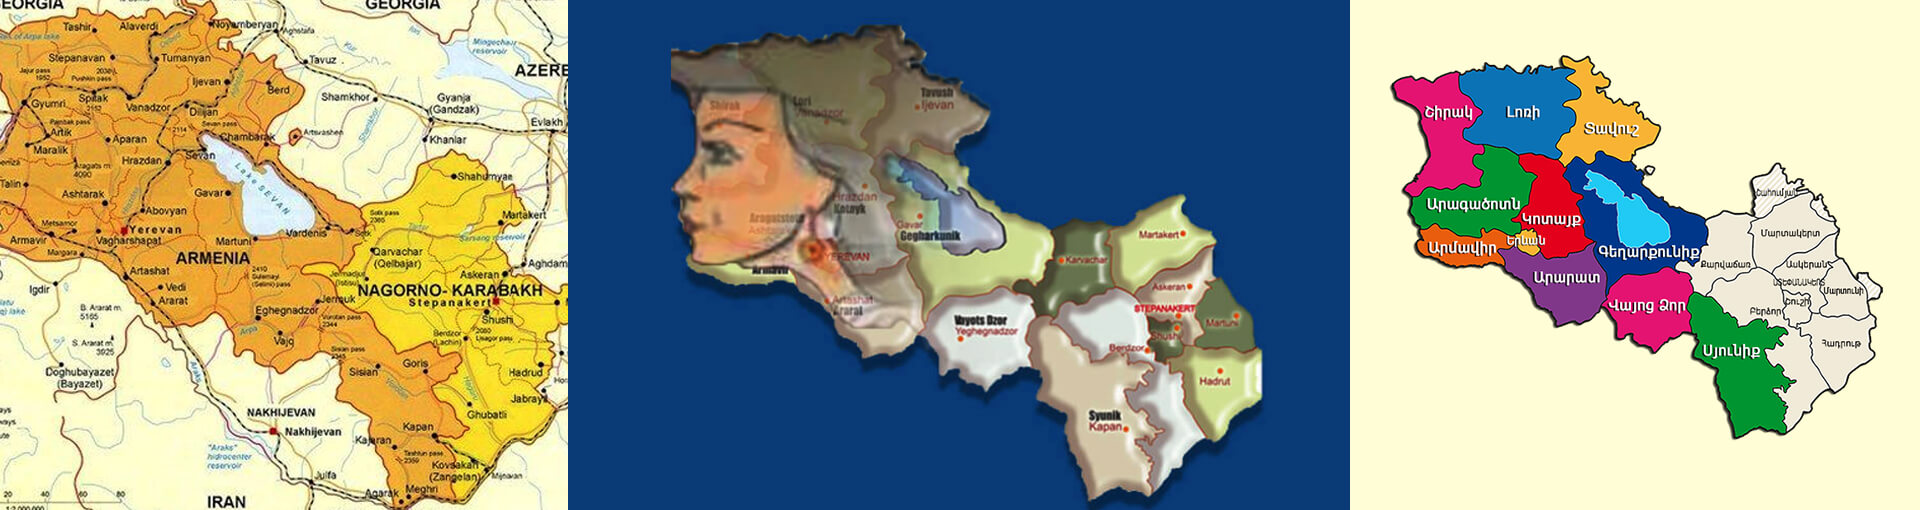 Map of Armenia: Beautiful Girl - Discover Armenia with us